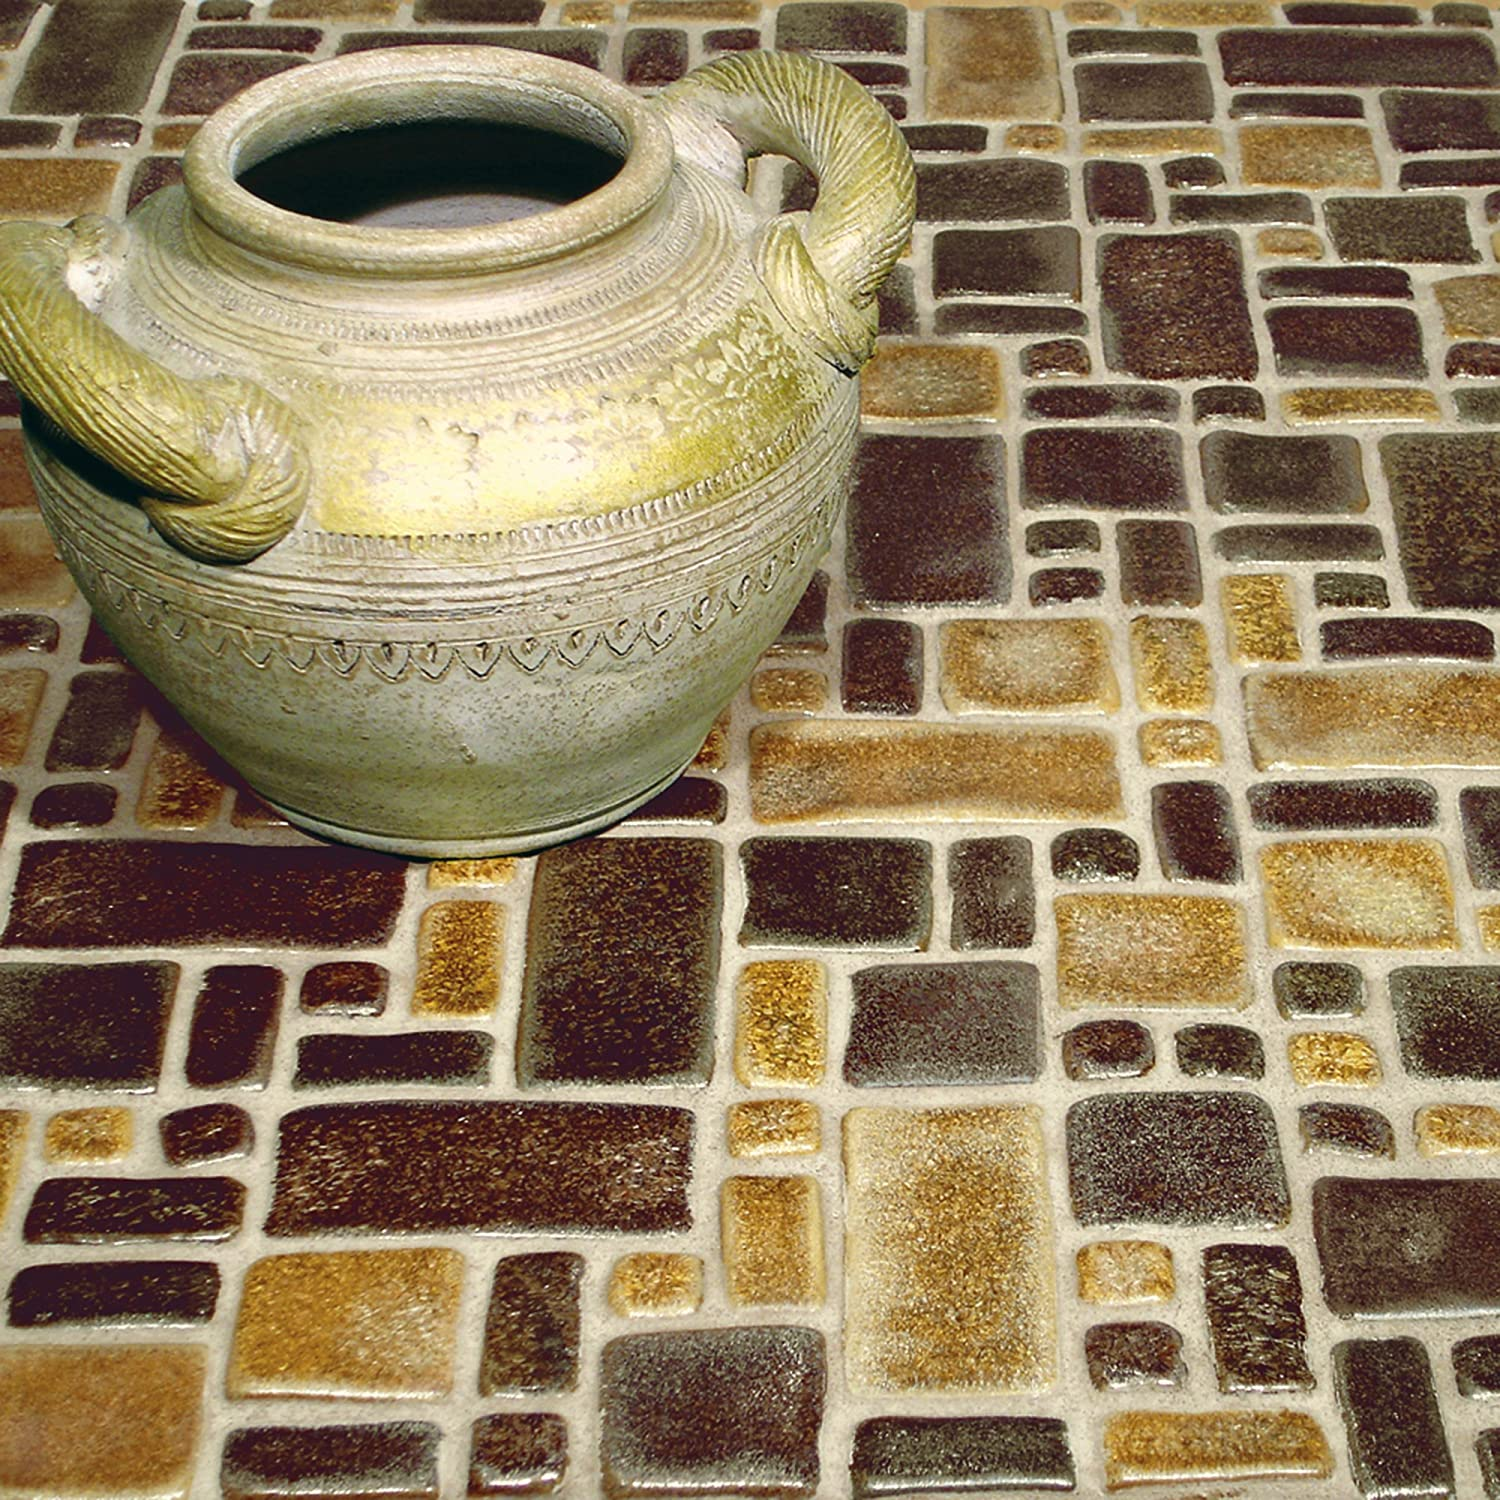 12 x 12 Beige//Tan//Cream//Brown SomerTile FDXKDC1 Heritage Goldstone Glazed Ceramic Mosaic Floor and Wall Tile